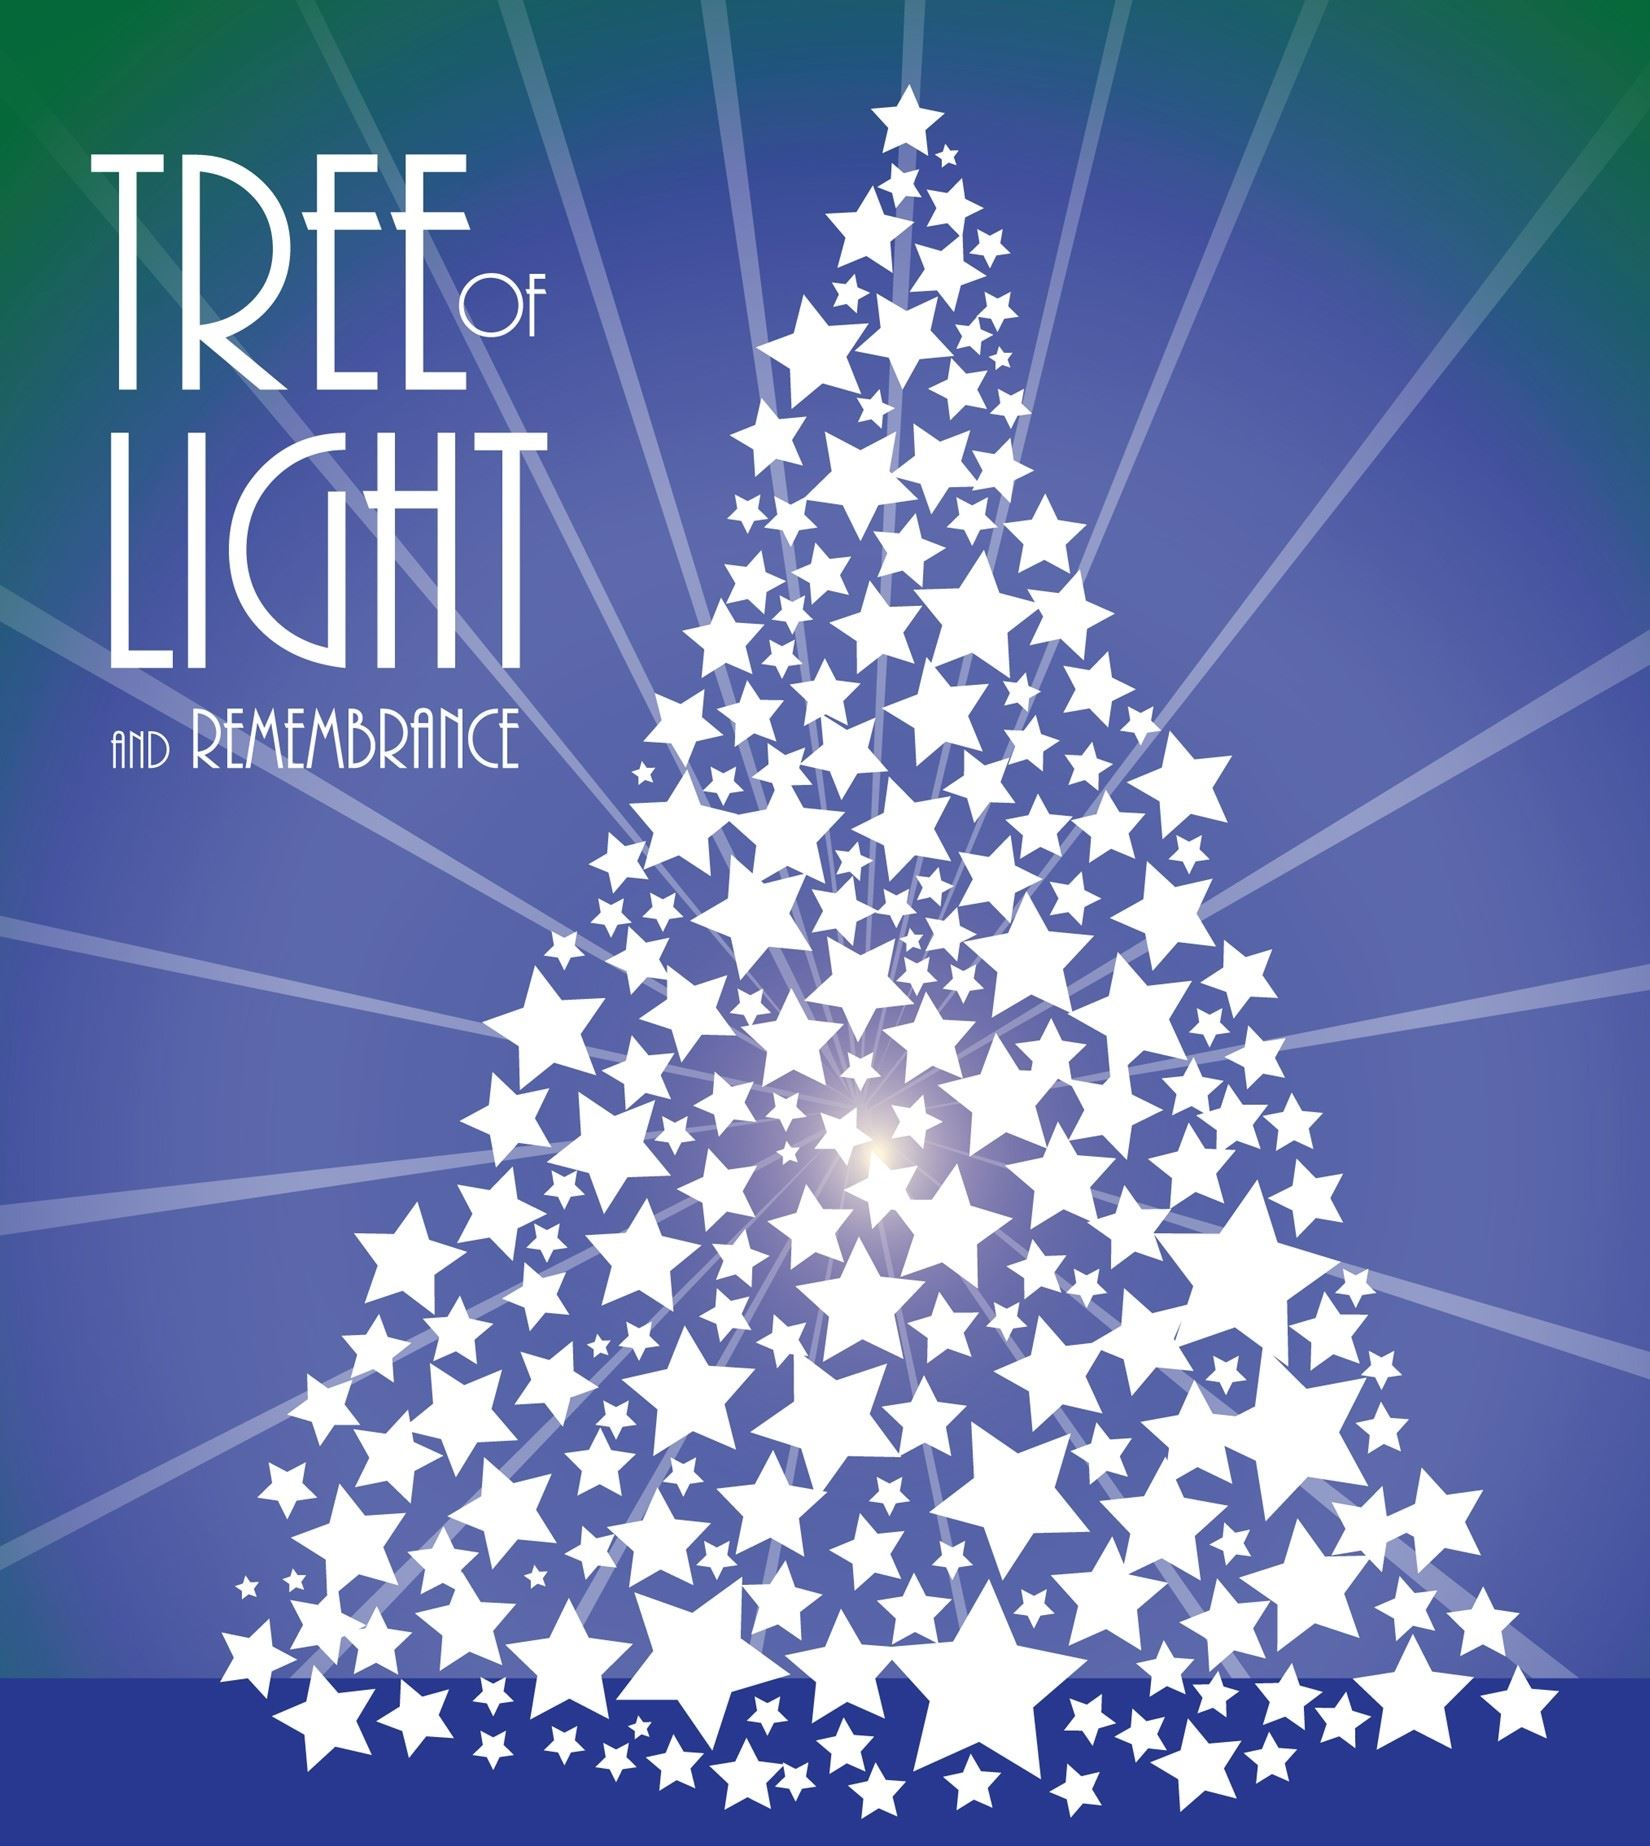 Tree of Light 2020 (IMAGE)